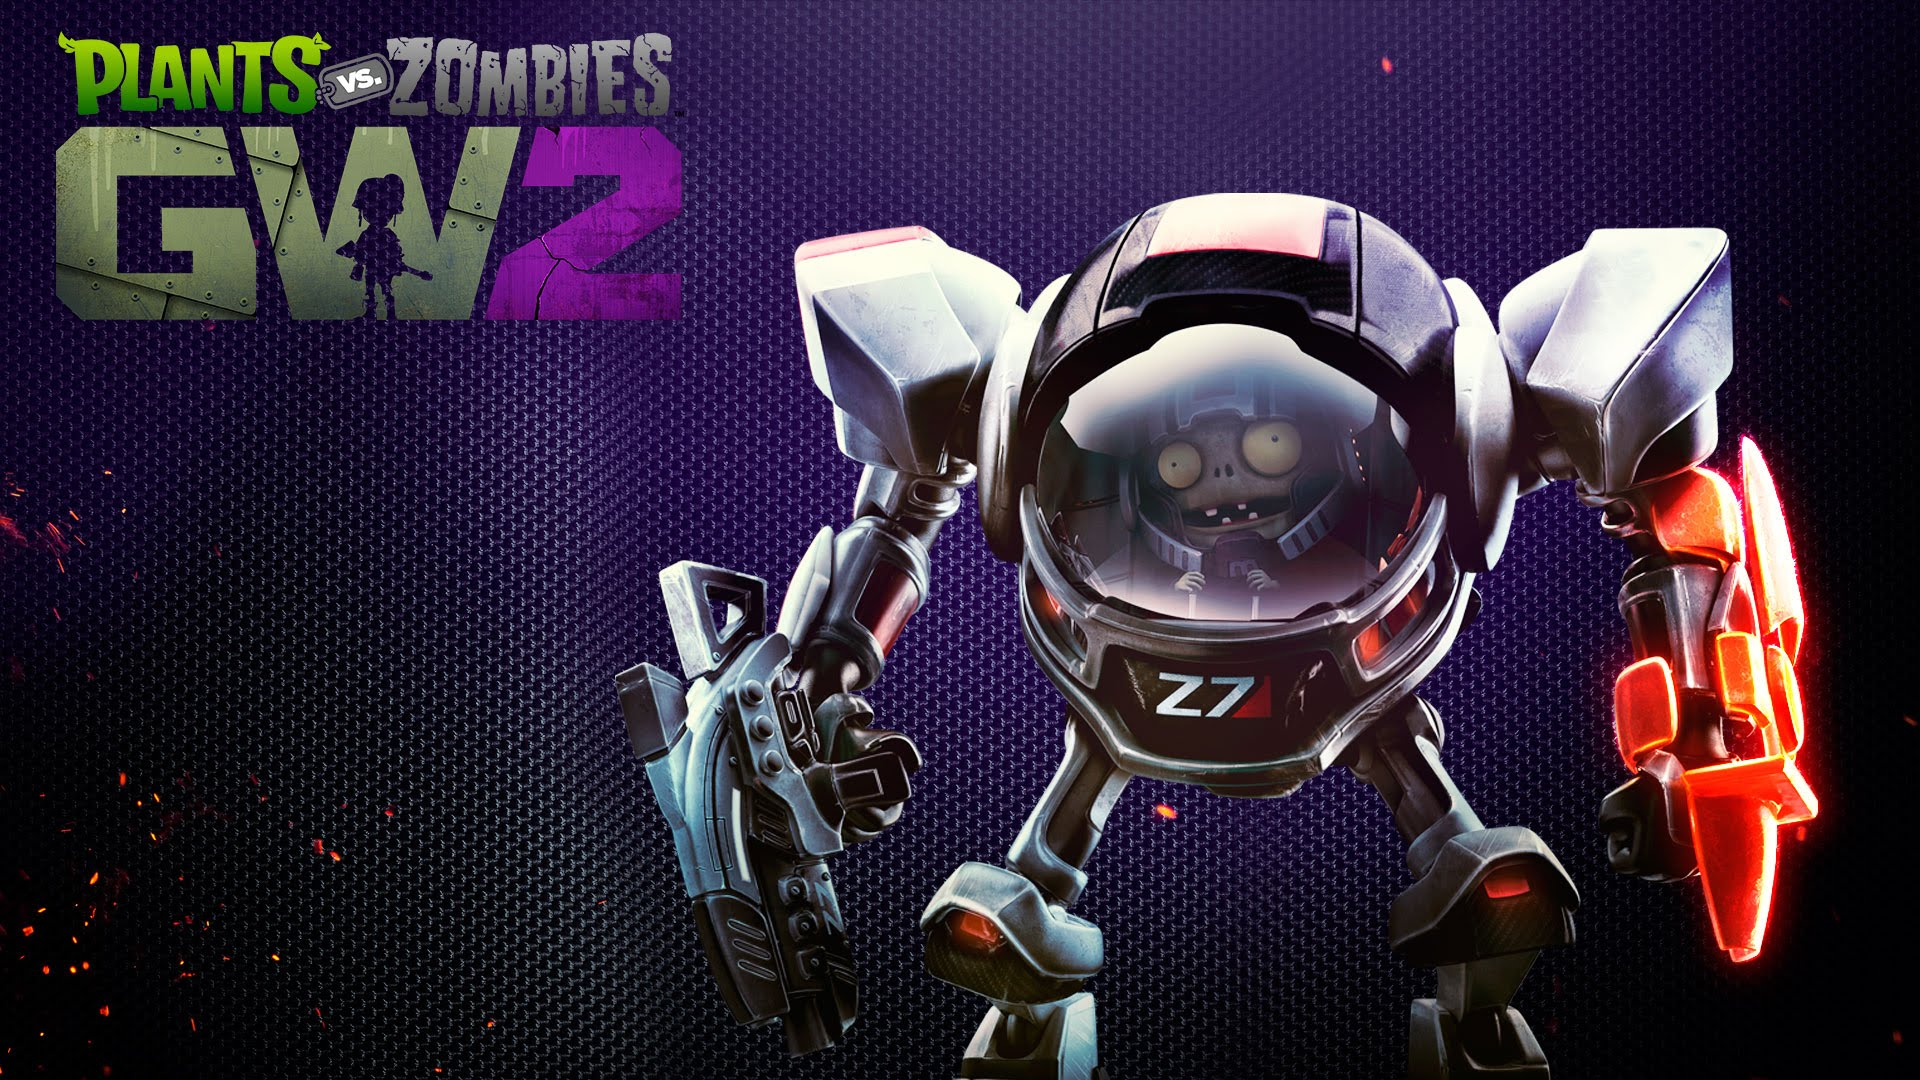 Plants vs. Zombies: Garden Warfare 2 Desktop wallpapers